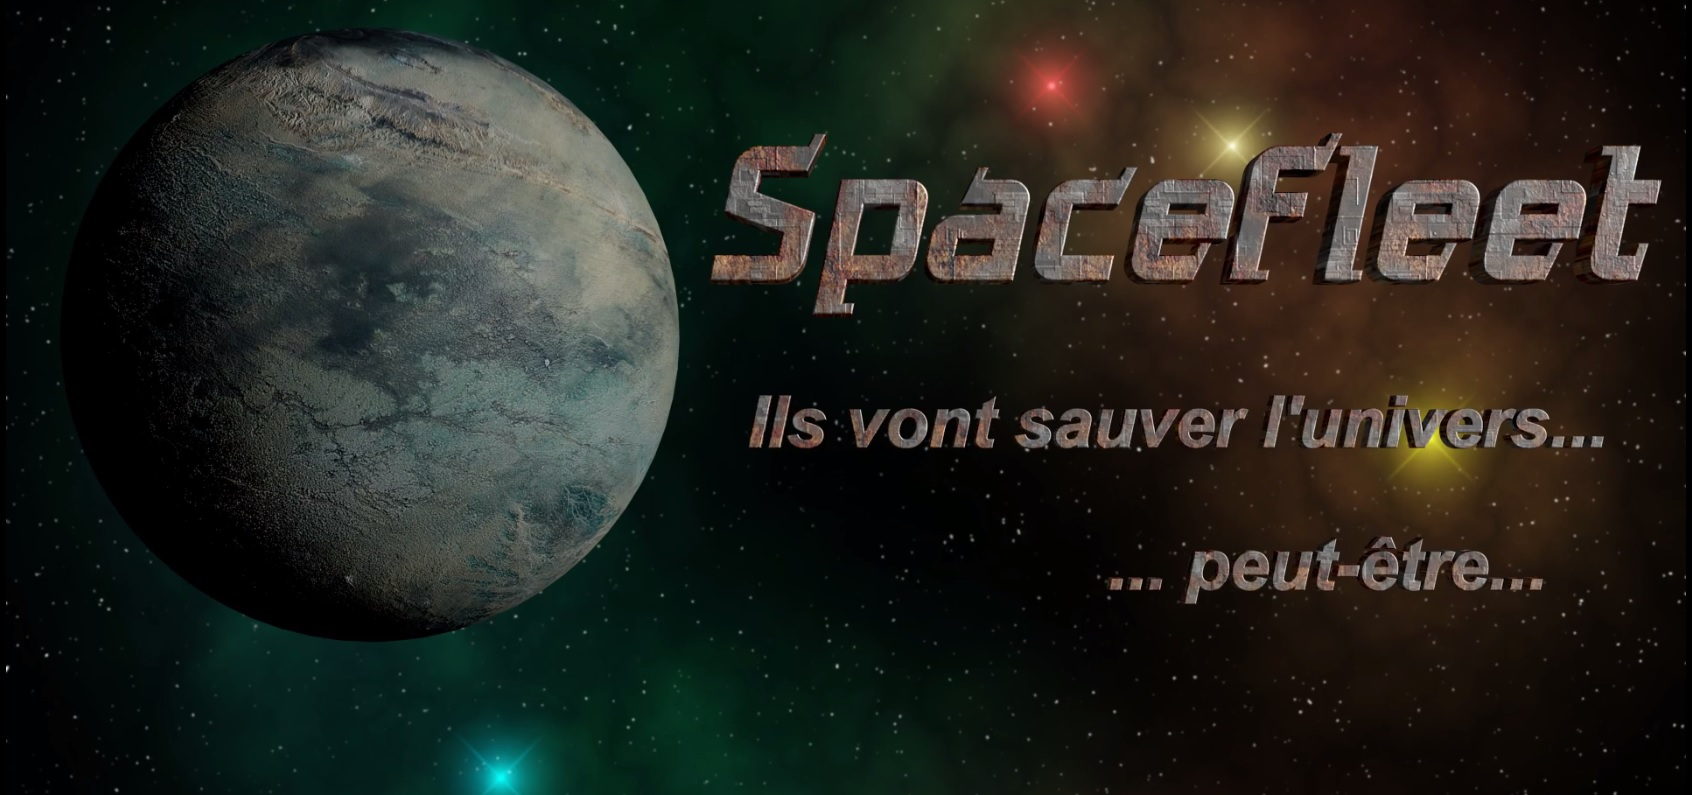 Spacefleet – Prologue